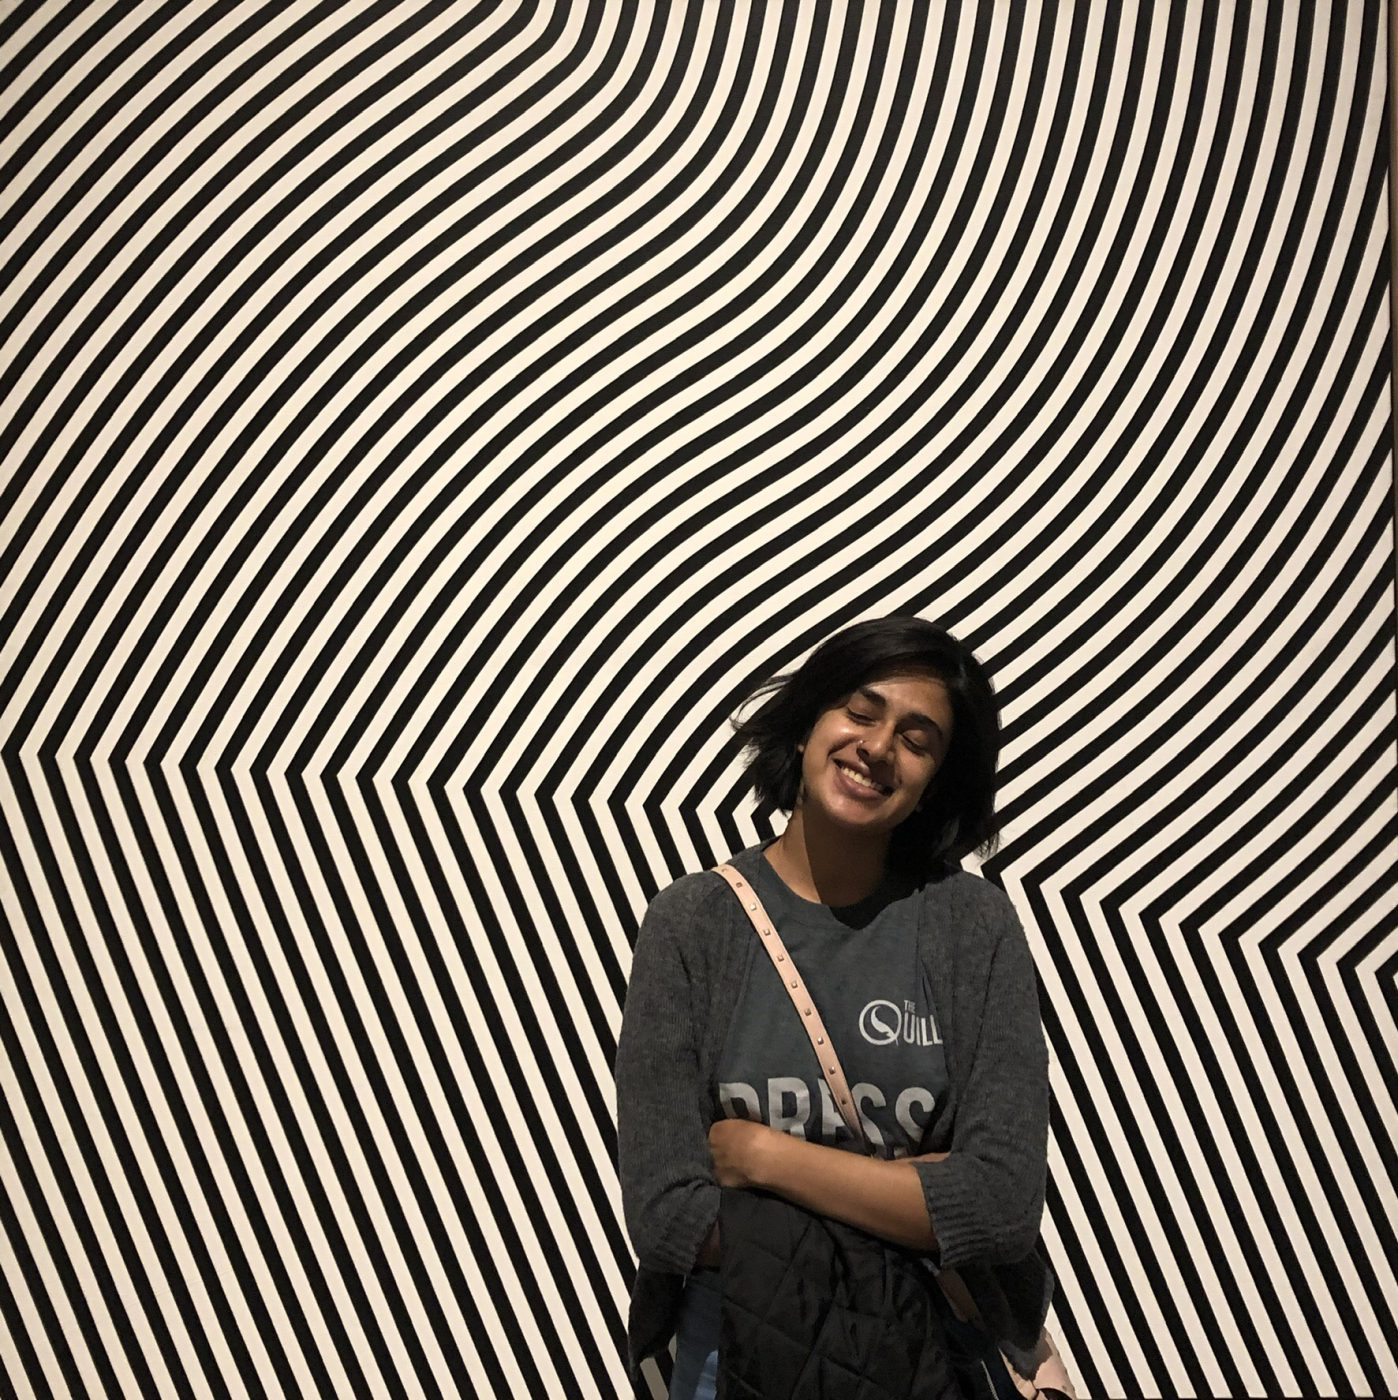 Young woman standing in front of abstract art piece.